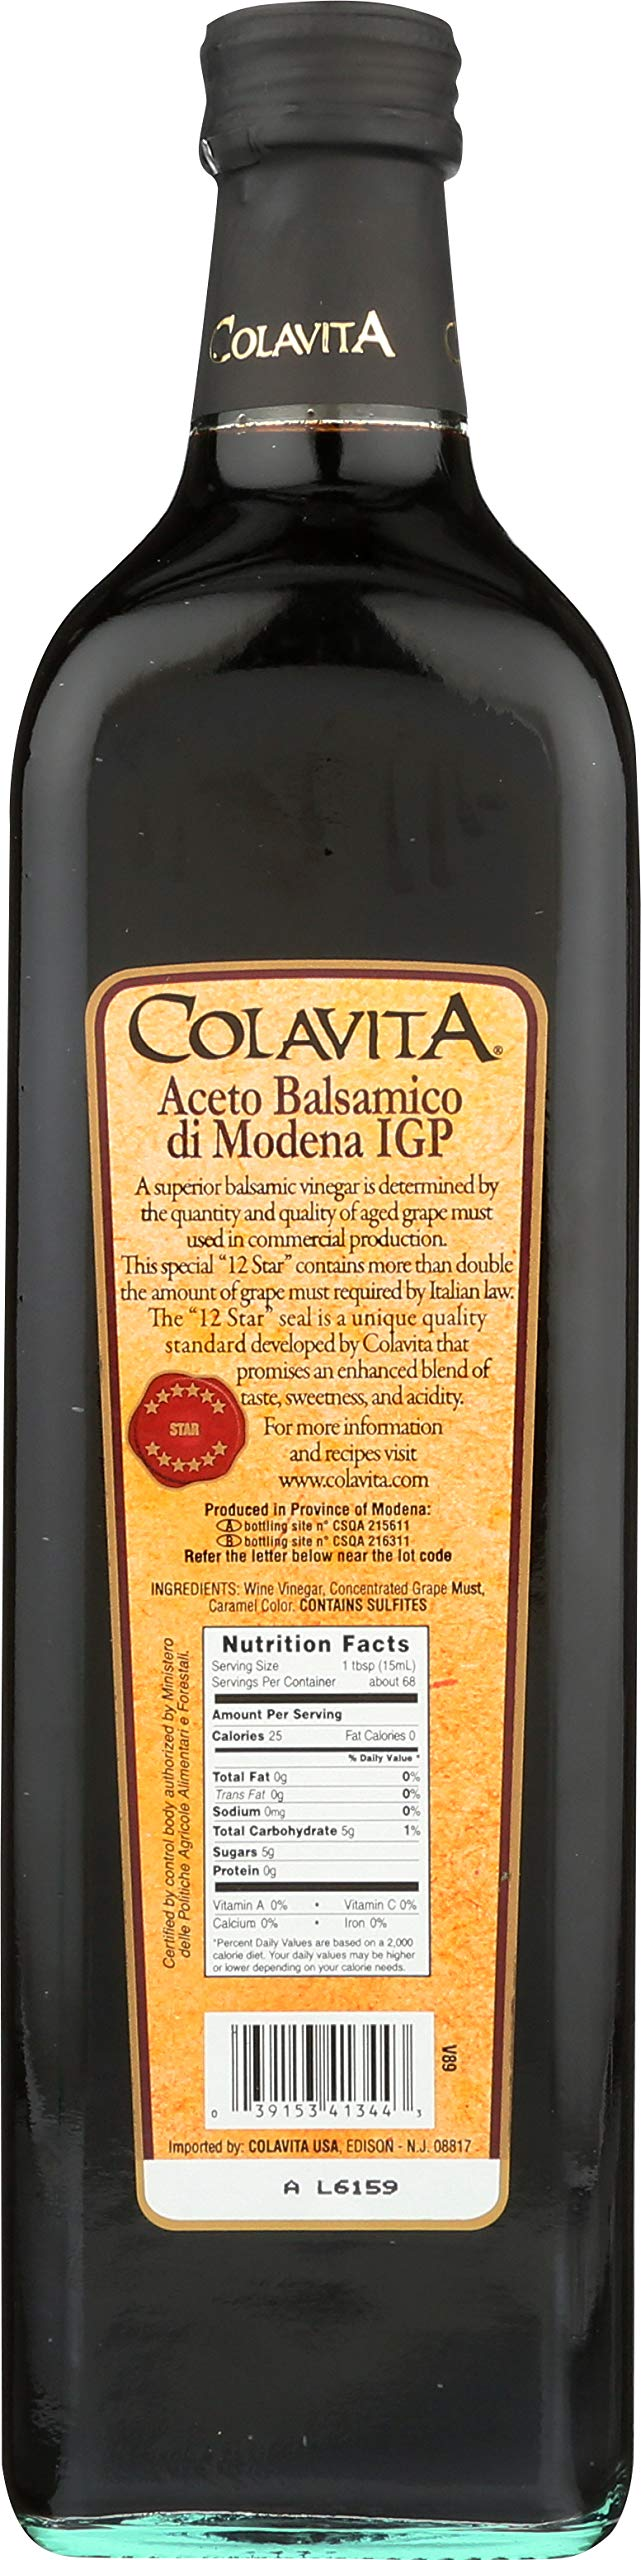 "Colavita Balsamic Vinegar of Modena, 34 Ounce (Pack of 2) 2 Contains Two Bottles of Colavita Balsamic Vinegar of Modena, 34 Ounce Each This special ""12 Star"" balsamic vinegar contains more than double the amount of grape must required by Italian Law. Product of Modena, Italy"